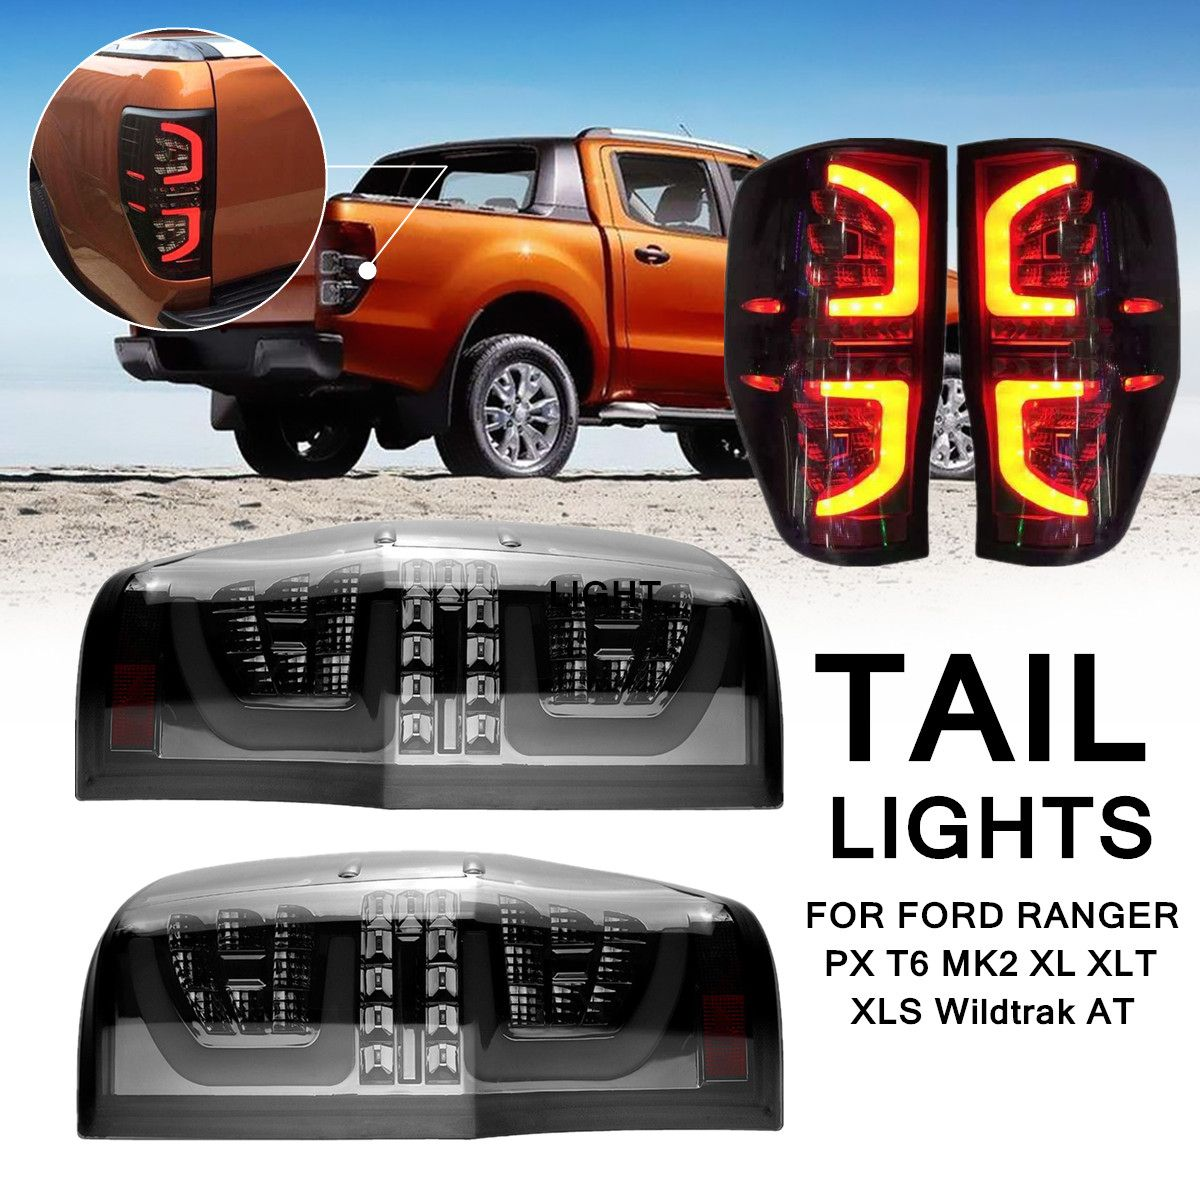 1Pair Smoked LED Rear Tail Lights Lamp for Ford Ranger PX T6 MK2 XL XLT XLS Wildtrak AT Making Installation Breeze match factory